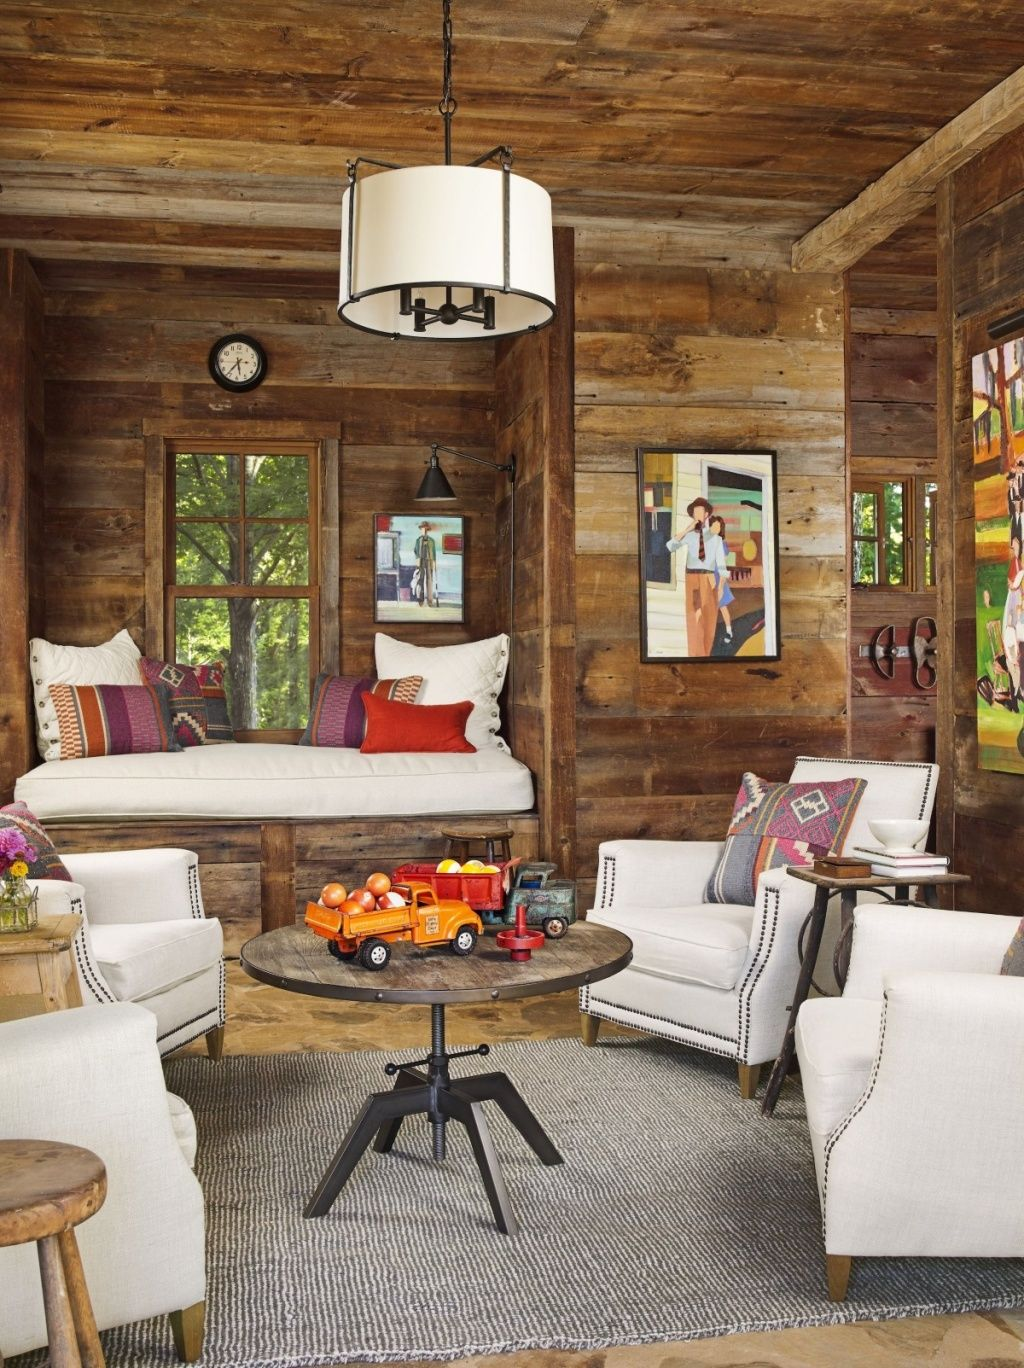 40 Rustic Living Room Ideas 2021 You May Haven T Imagined Rustic Living Room Living Room Decor Rustic Modern Rustic Living Room